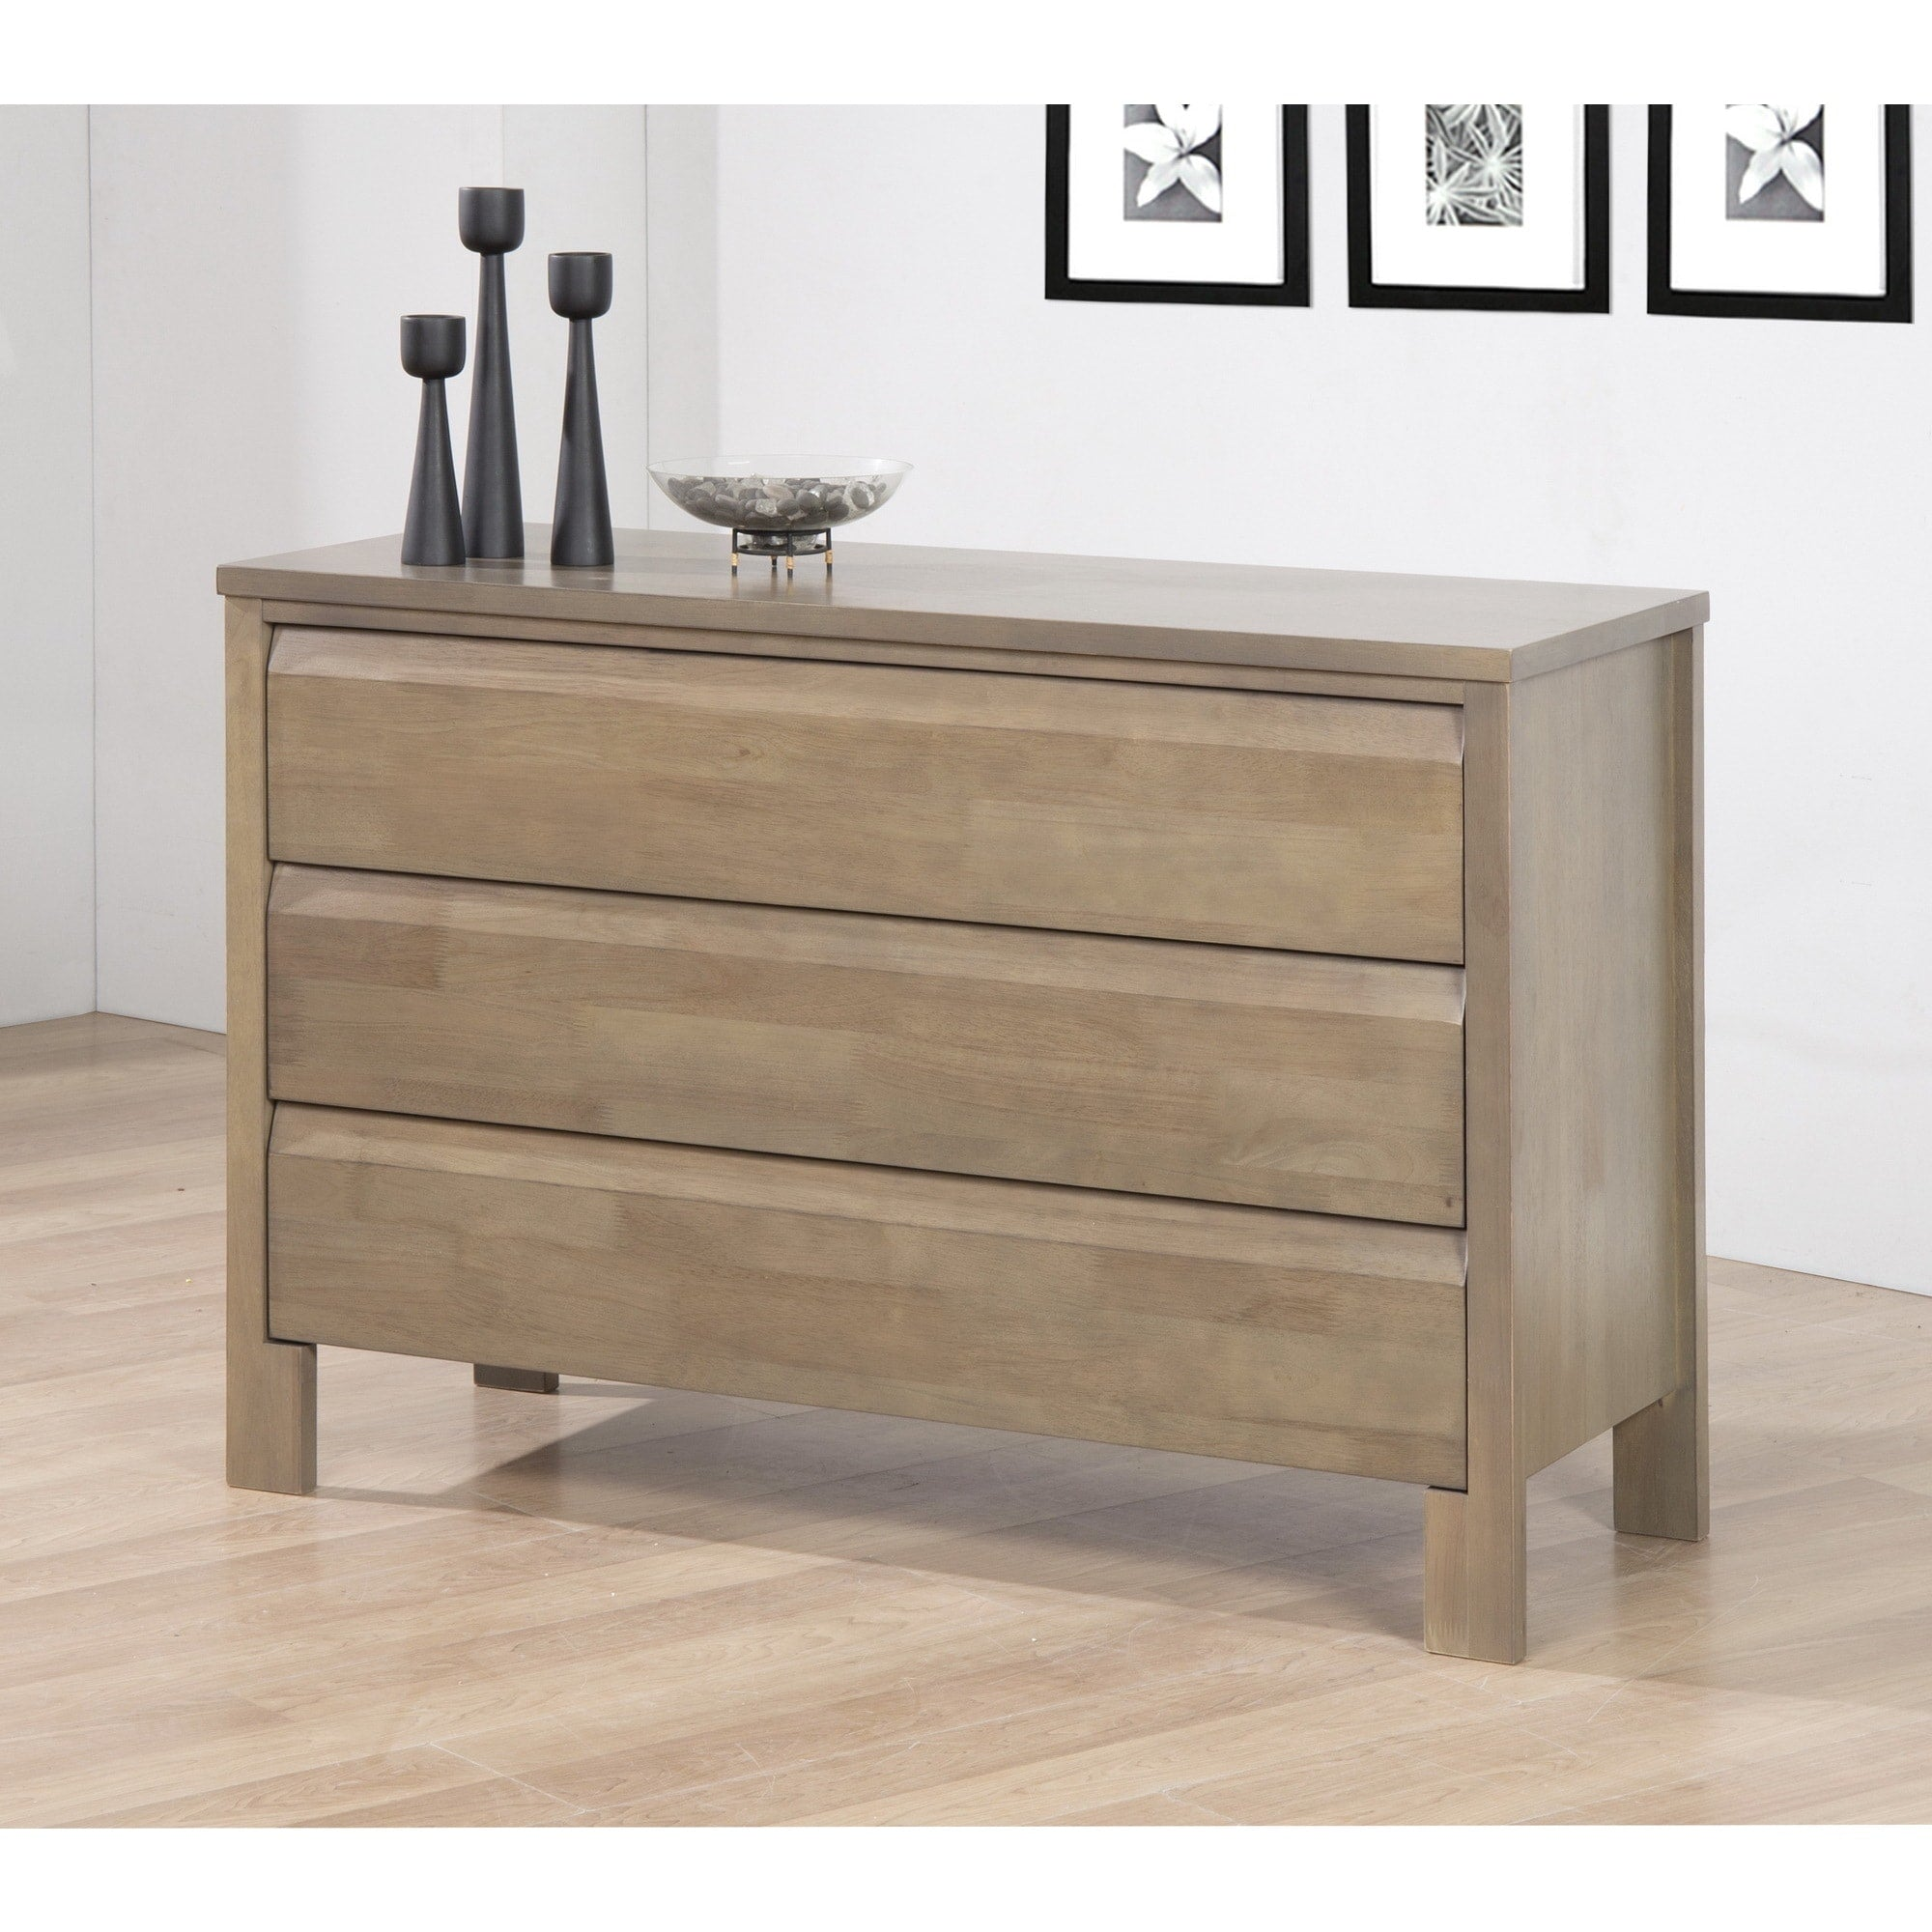 Gray Three-drawer Dresser